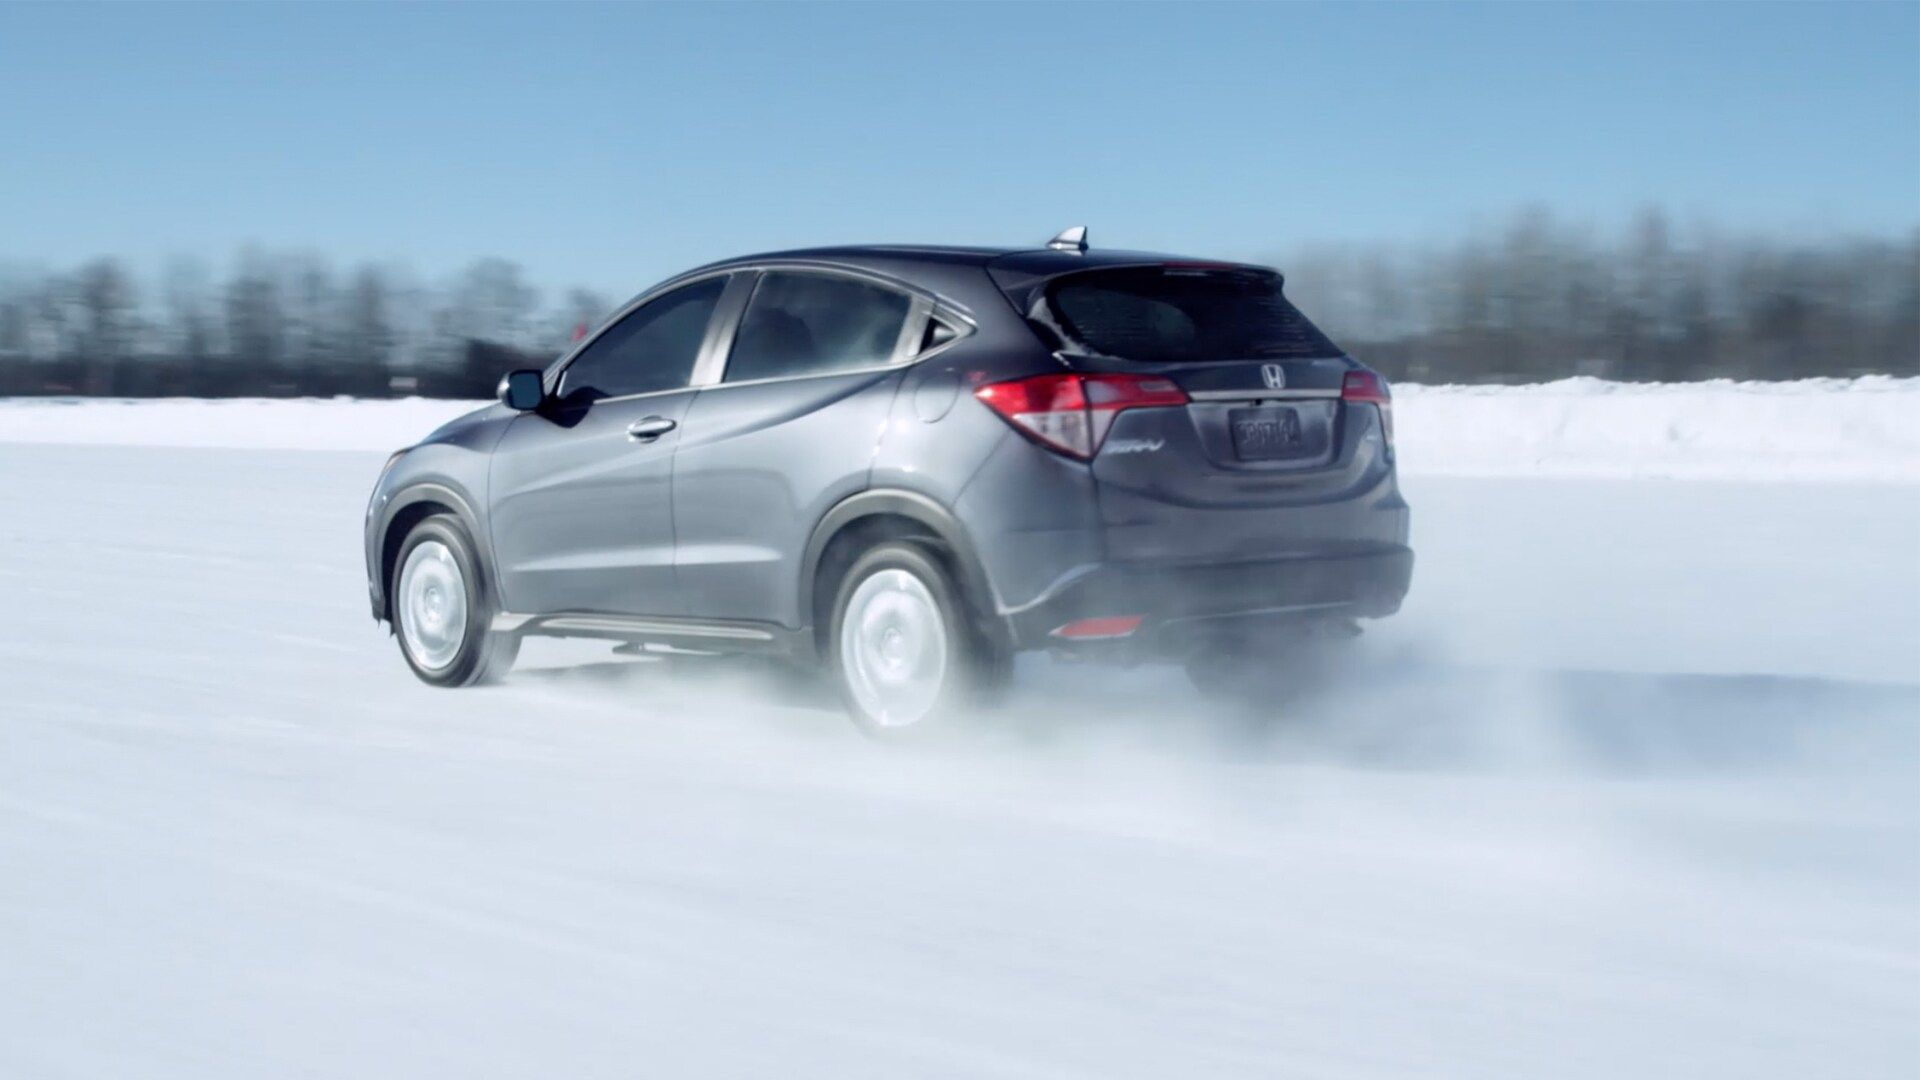 Honda HR-V Lease Specials in Morton Grove, IL